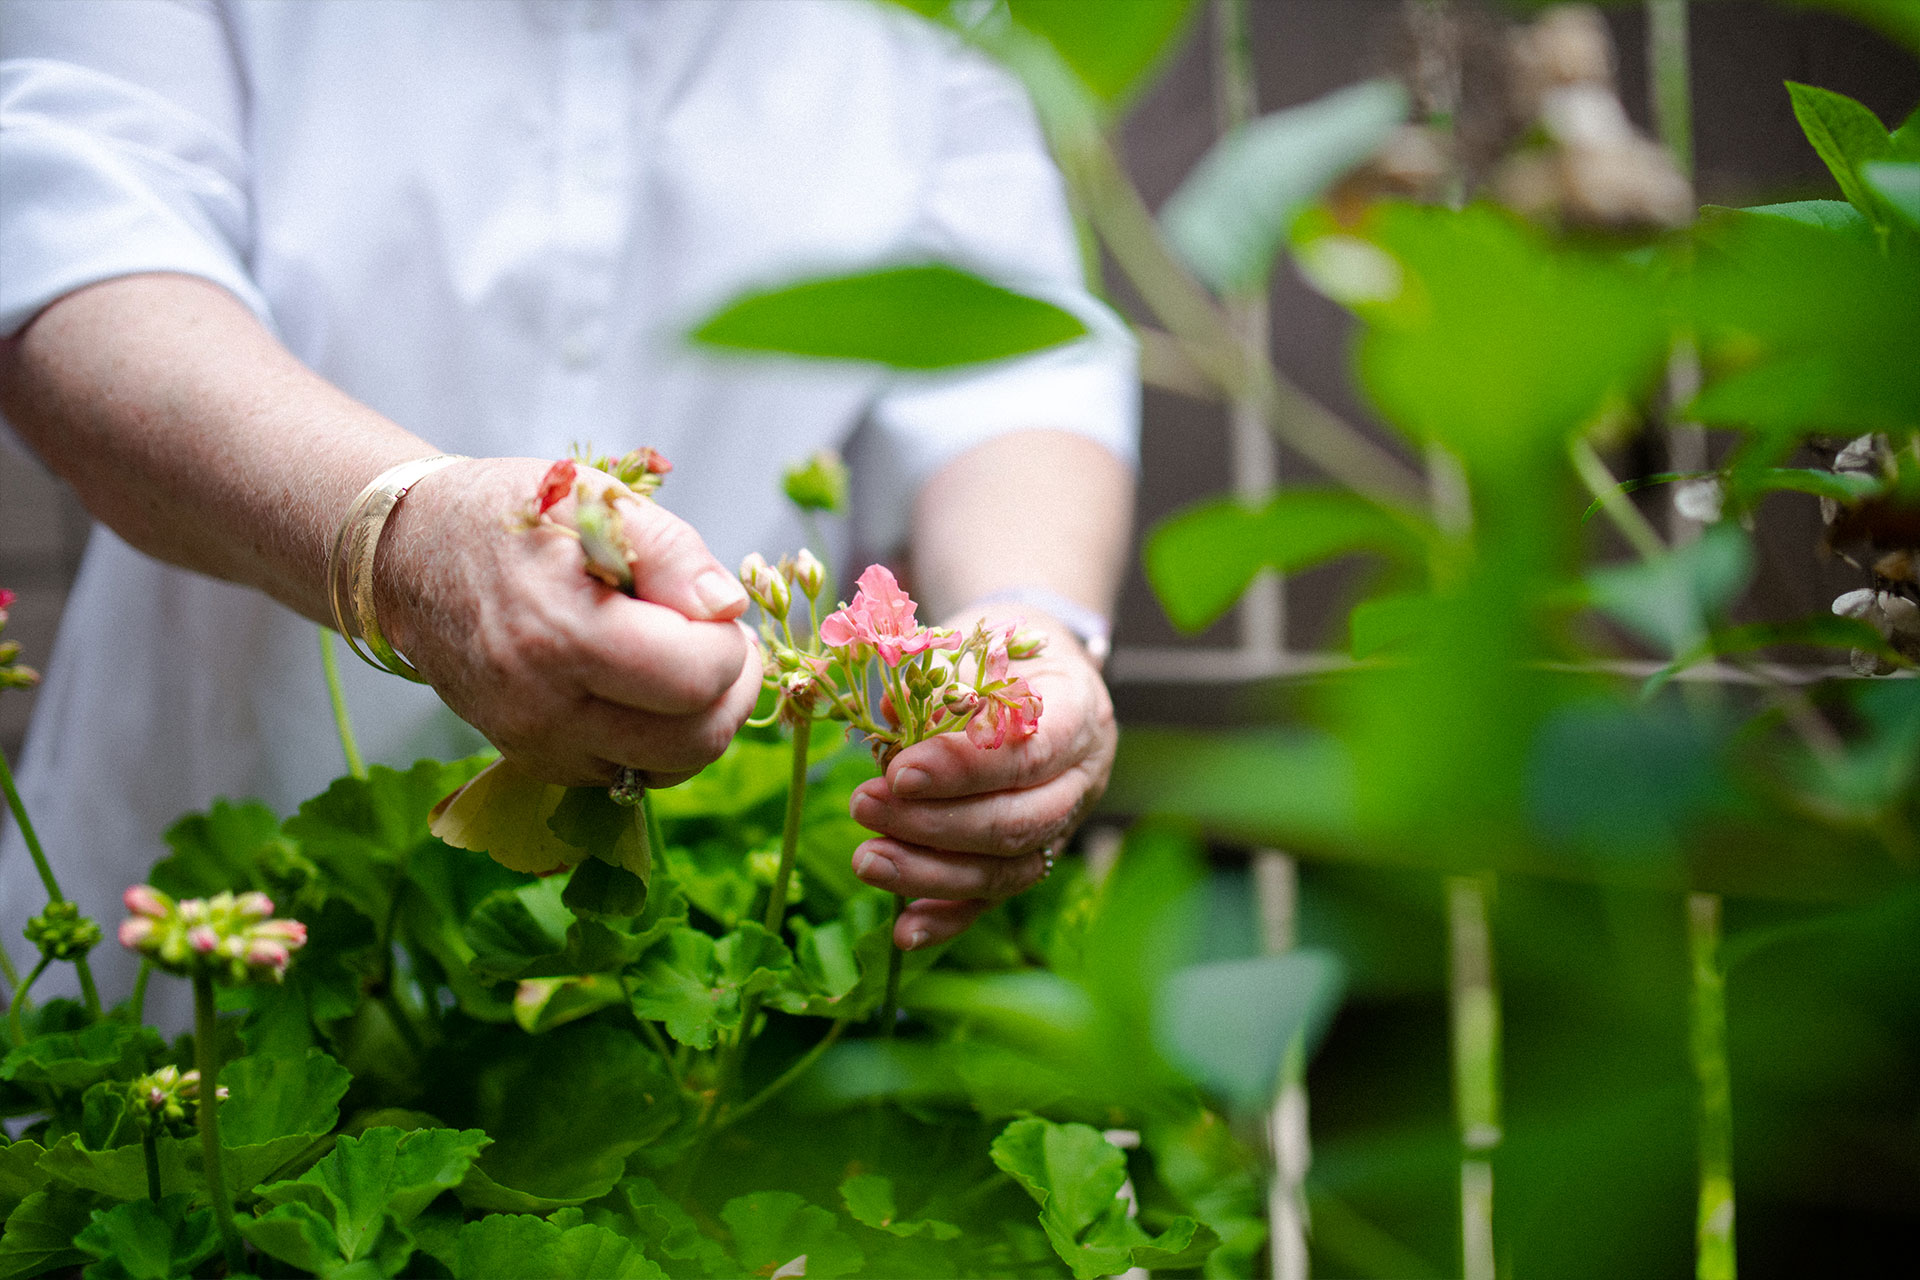 Suzanne removes some old flowers from a blossoming geranium plant.